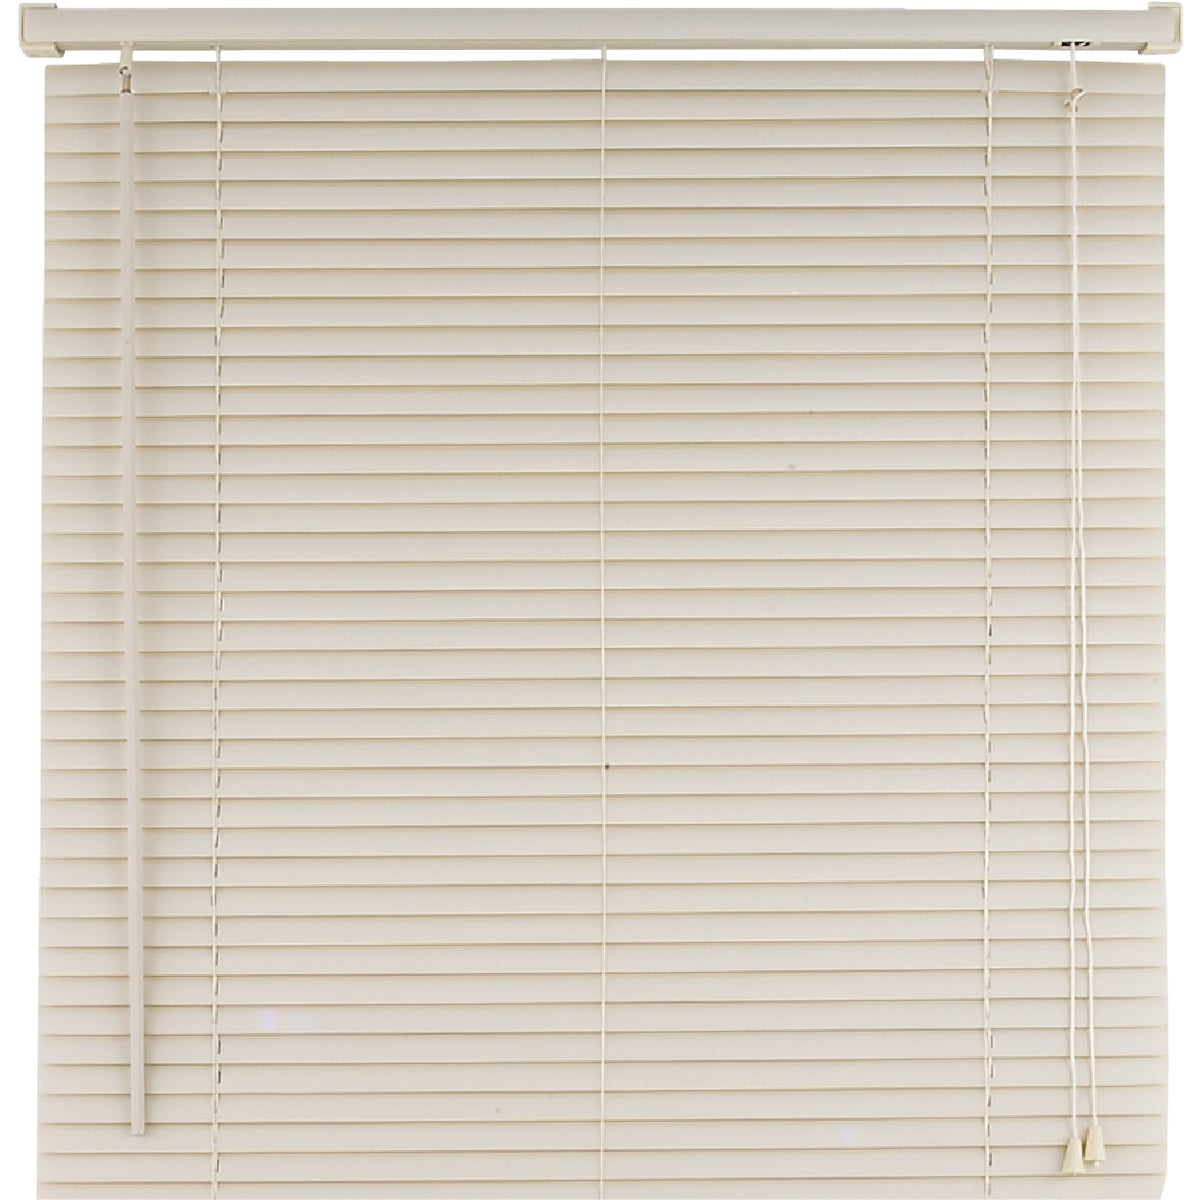 39X64 ALABASTER BLIND - 15293 by Lotus Wind Incom